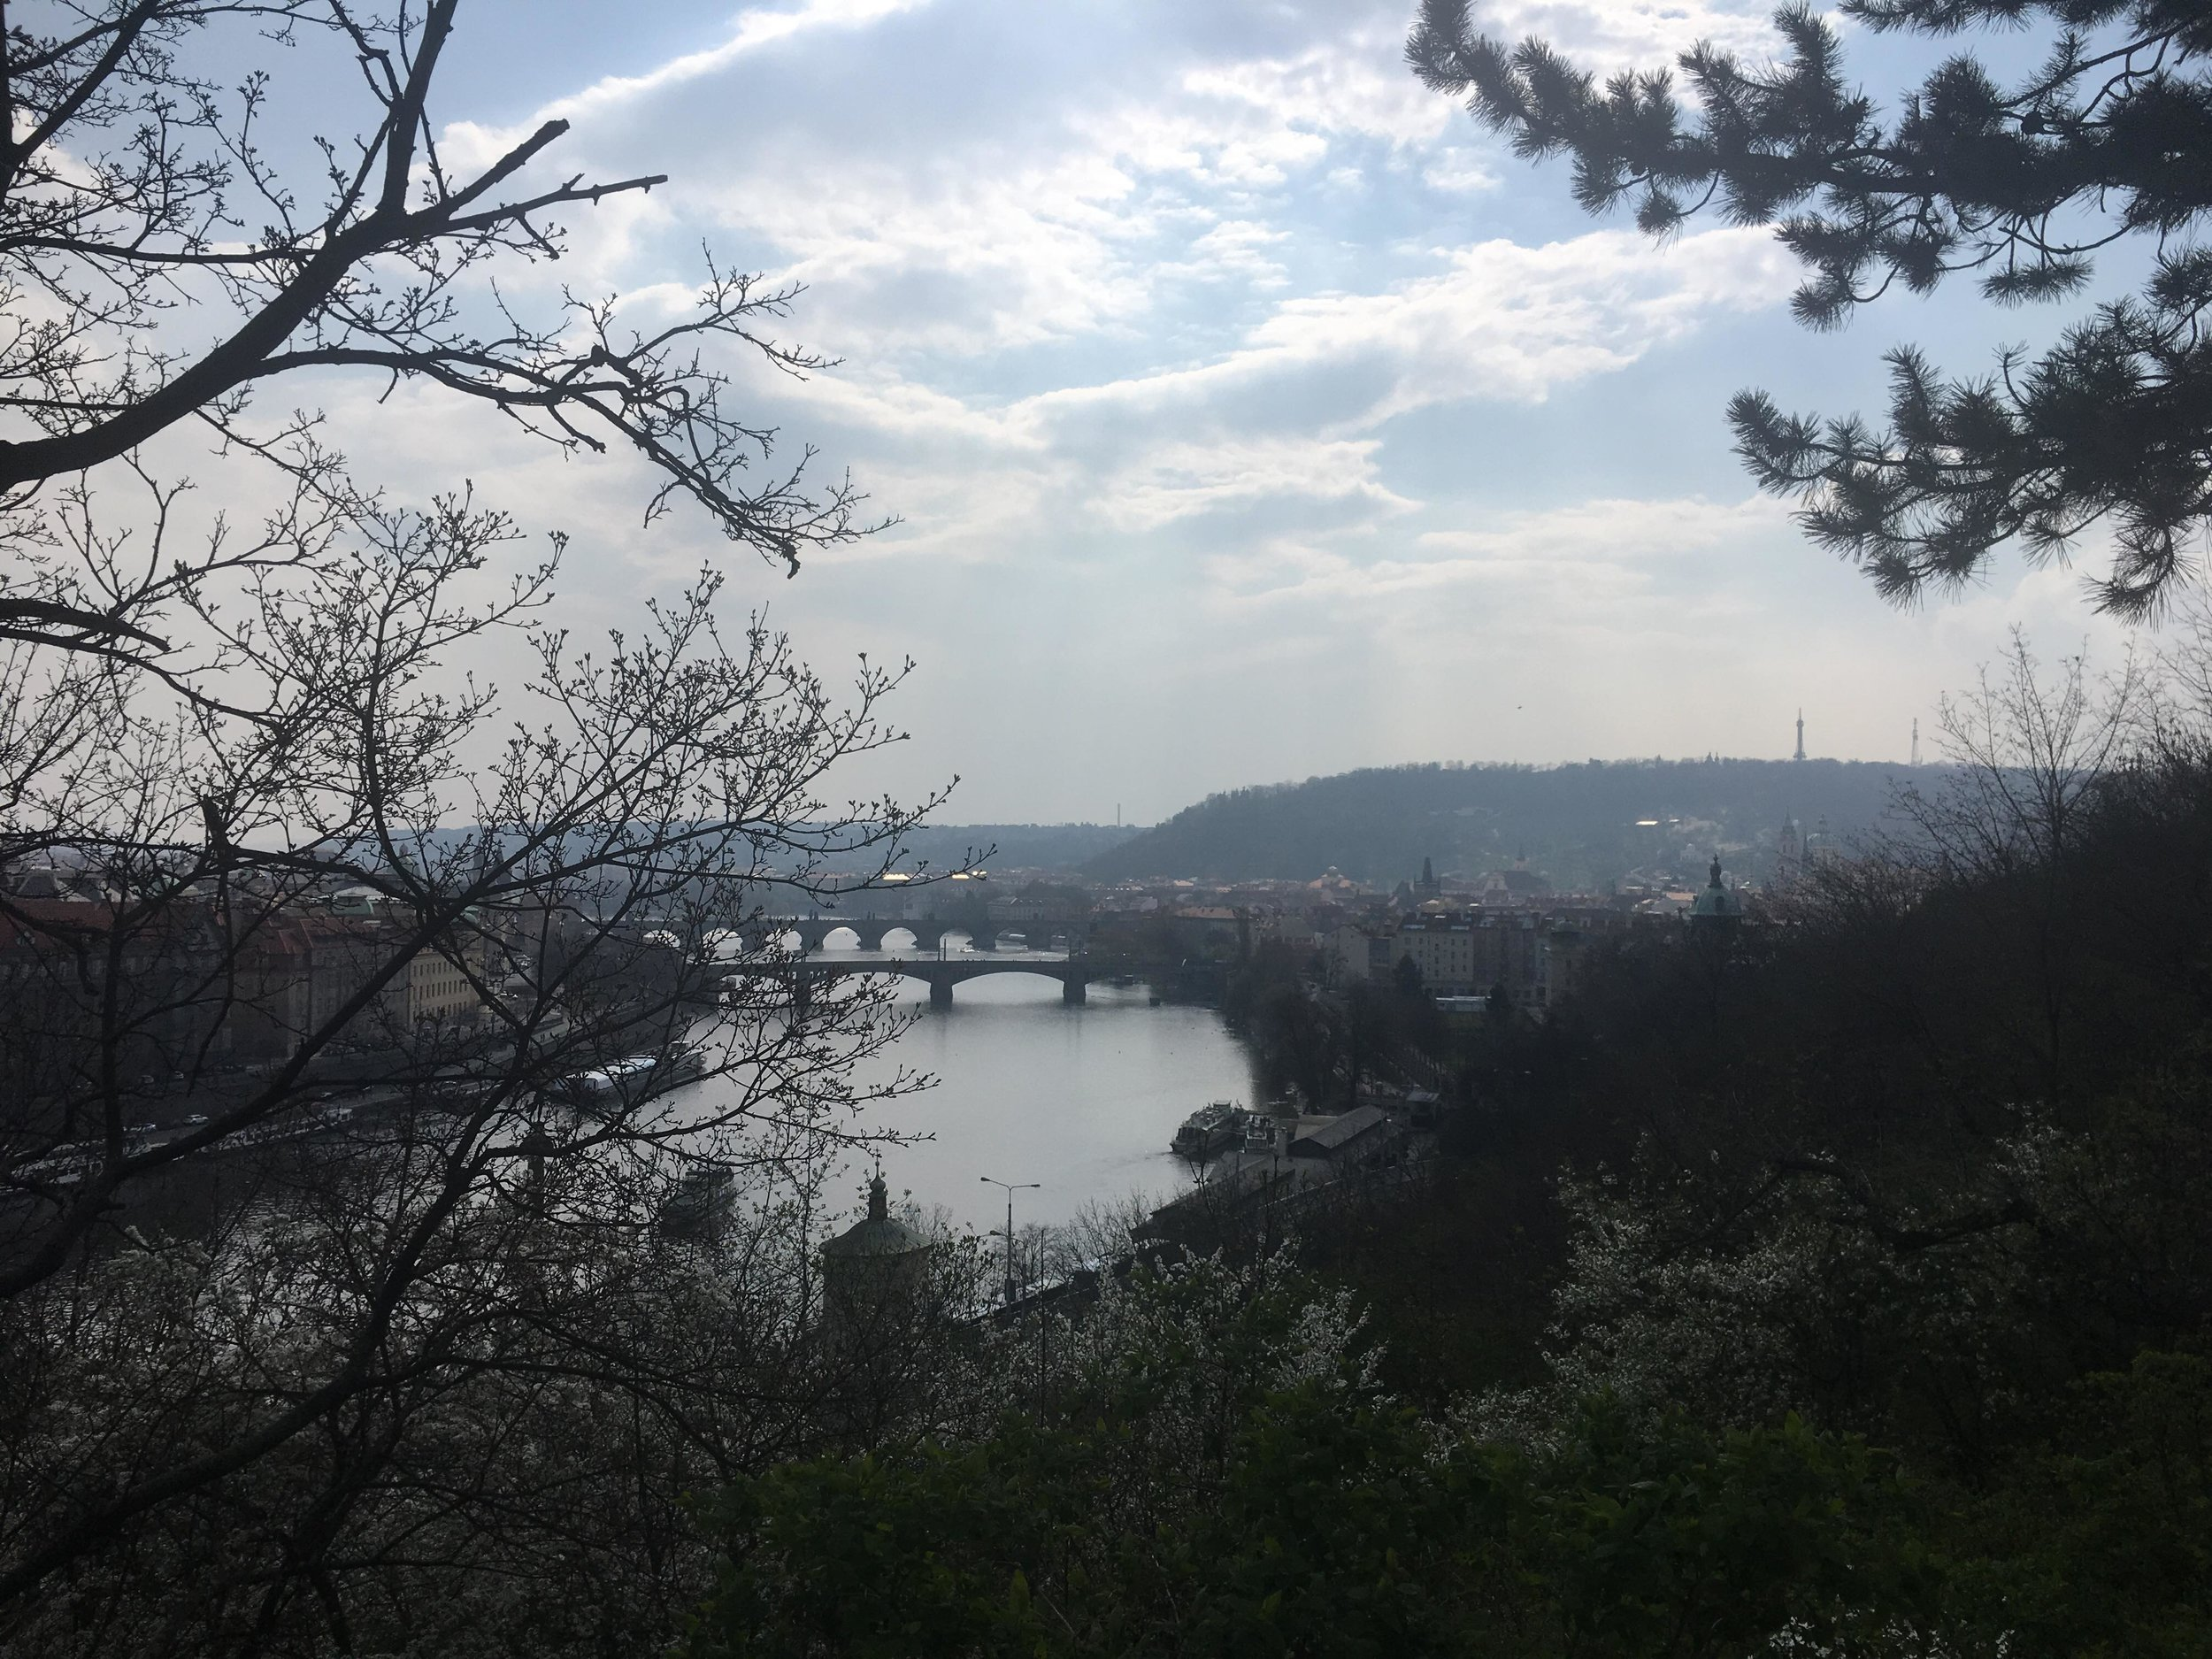 A view of Charles Bridge and the Vltava River from Latna Park